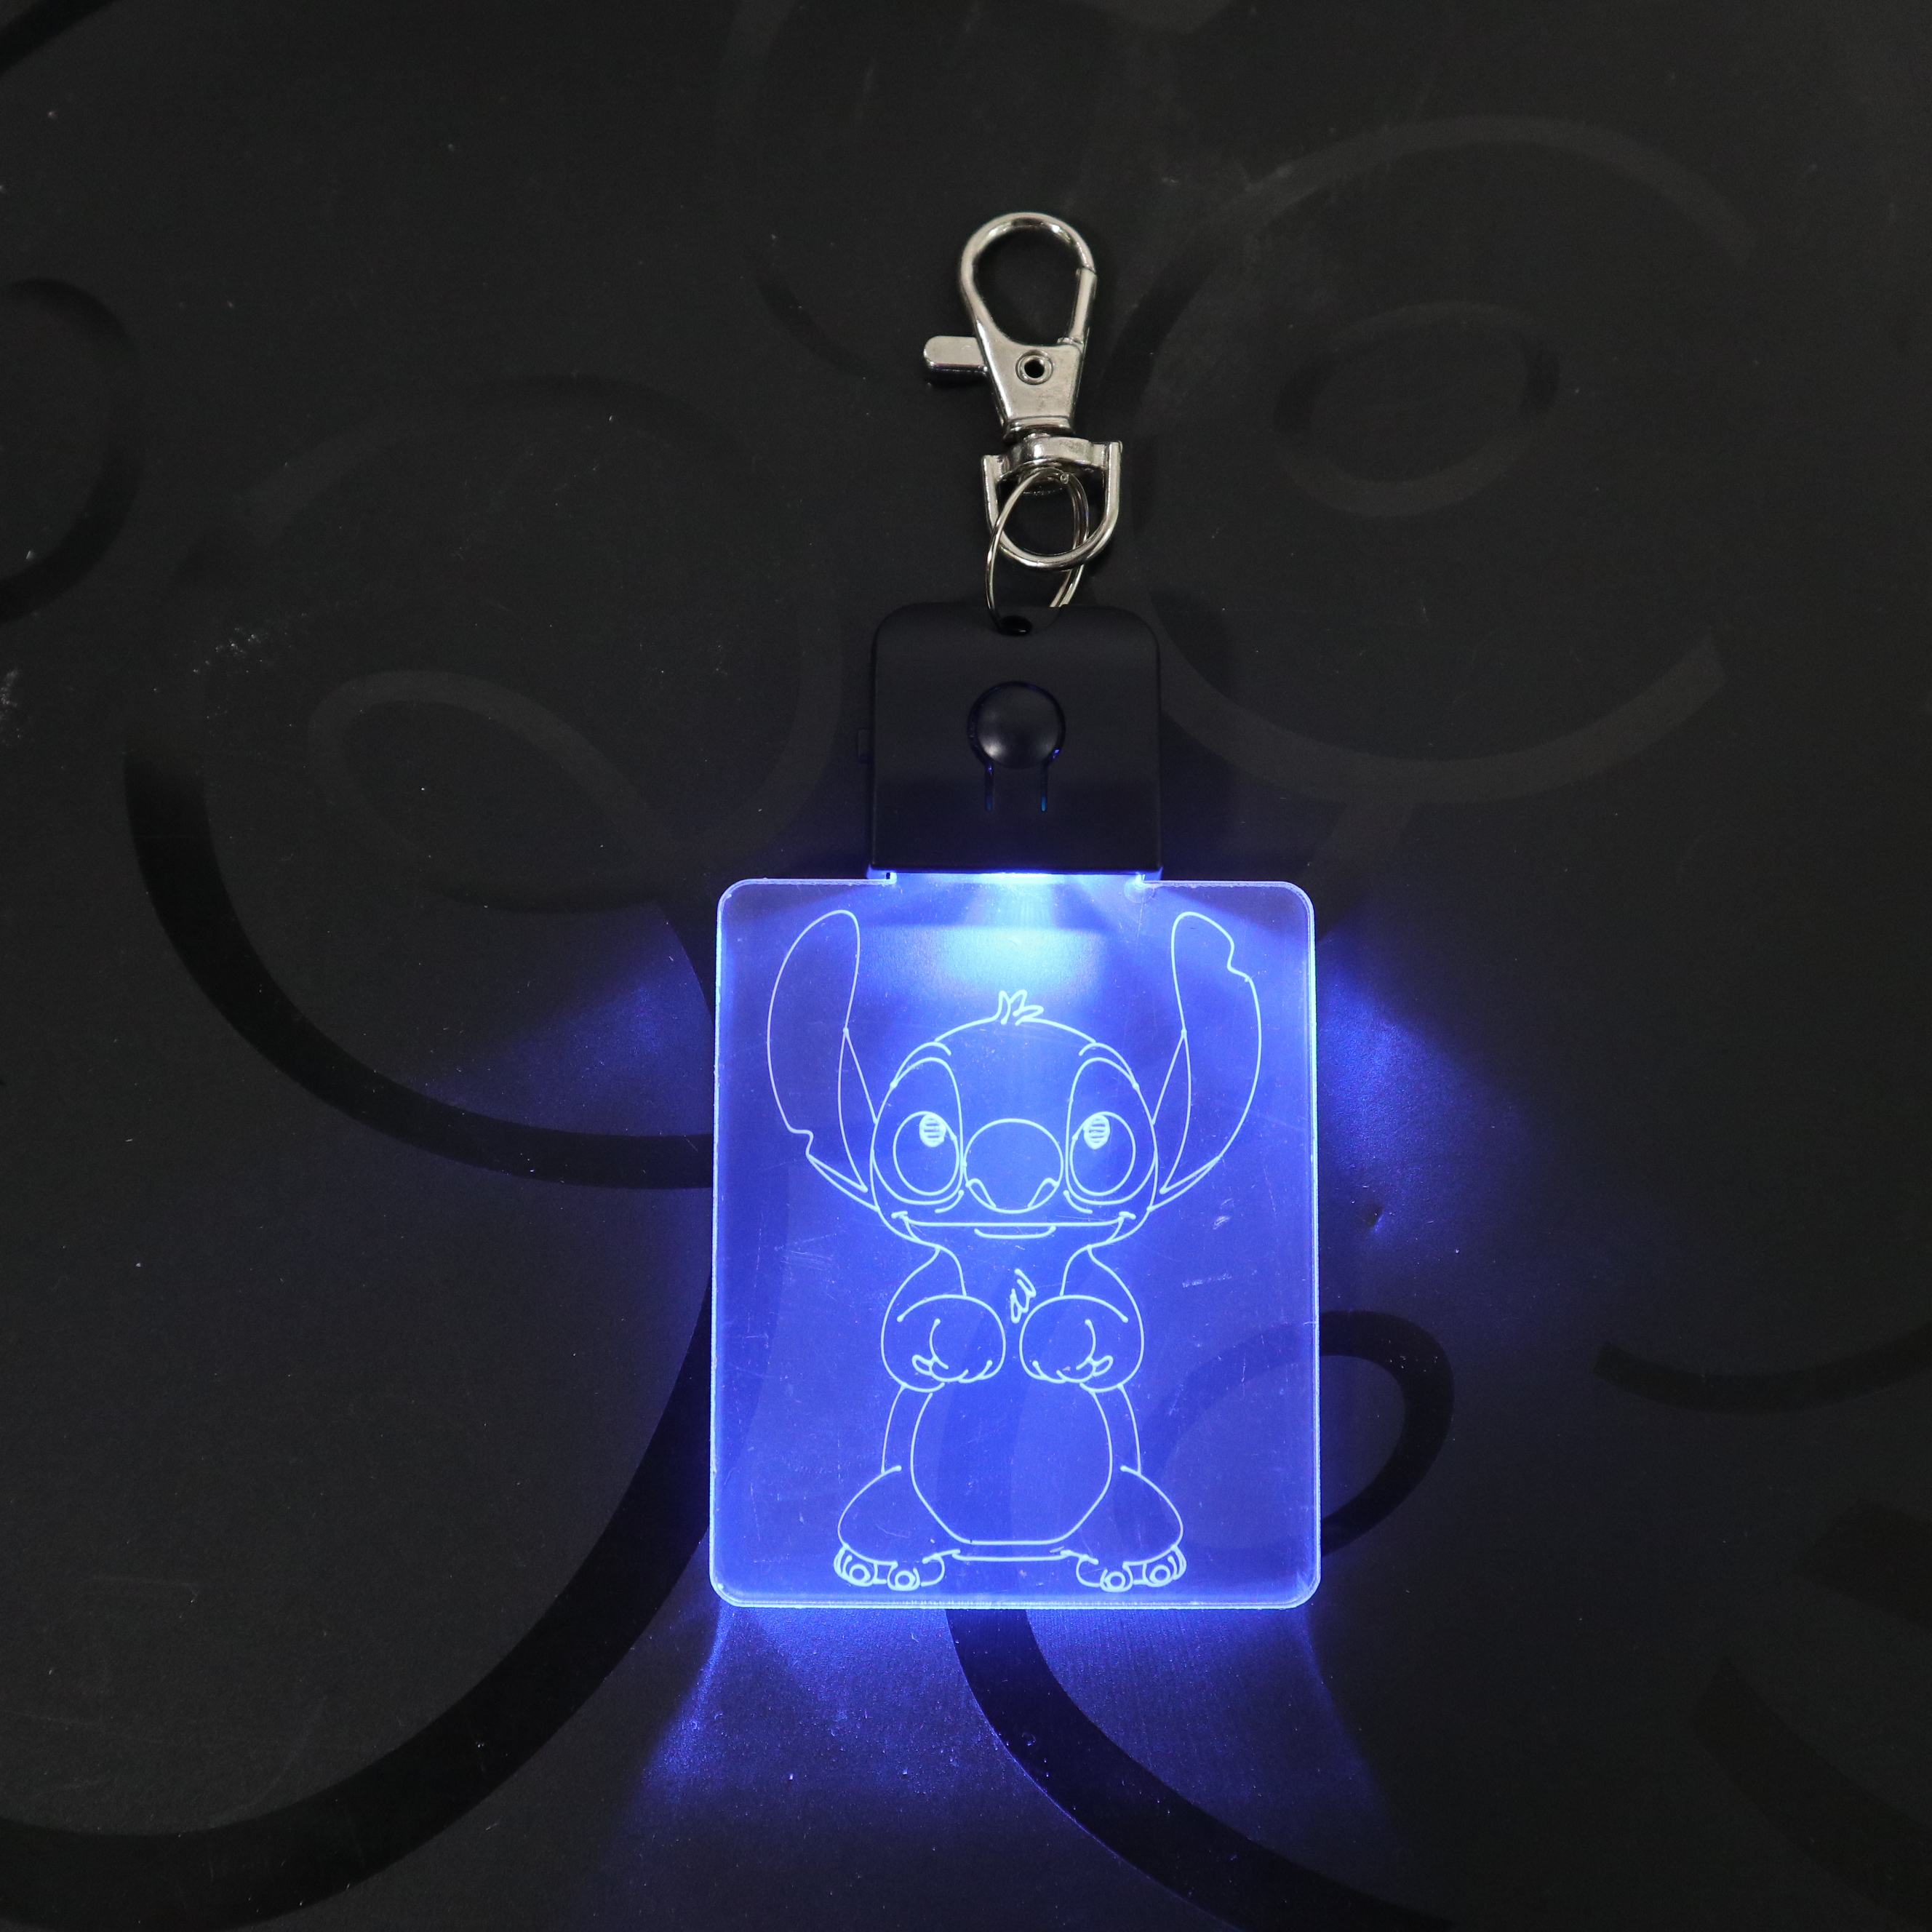 Stitch Keychain Cartoon 3D Arylic Night Light LED Magical Table Lamp Lighting Colors Decoration Gift Dropshipping